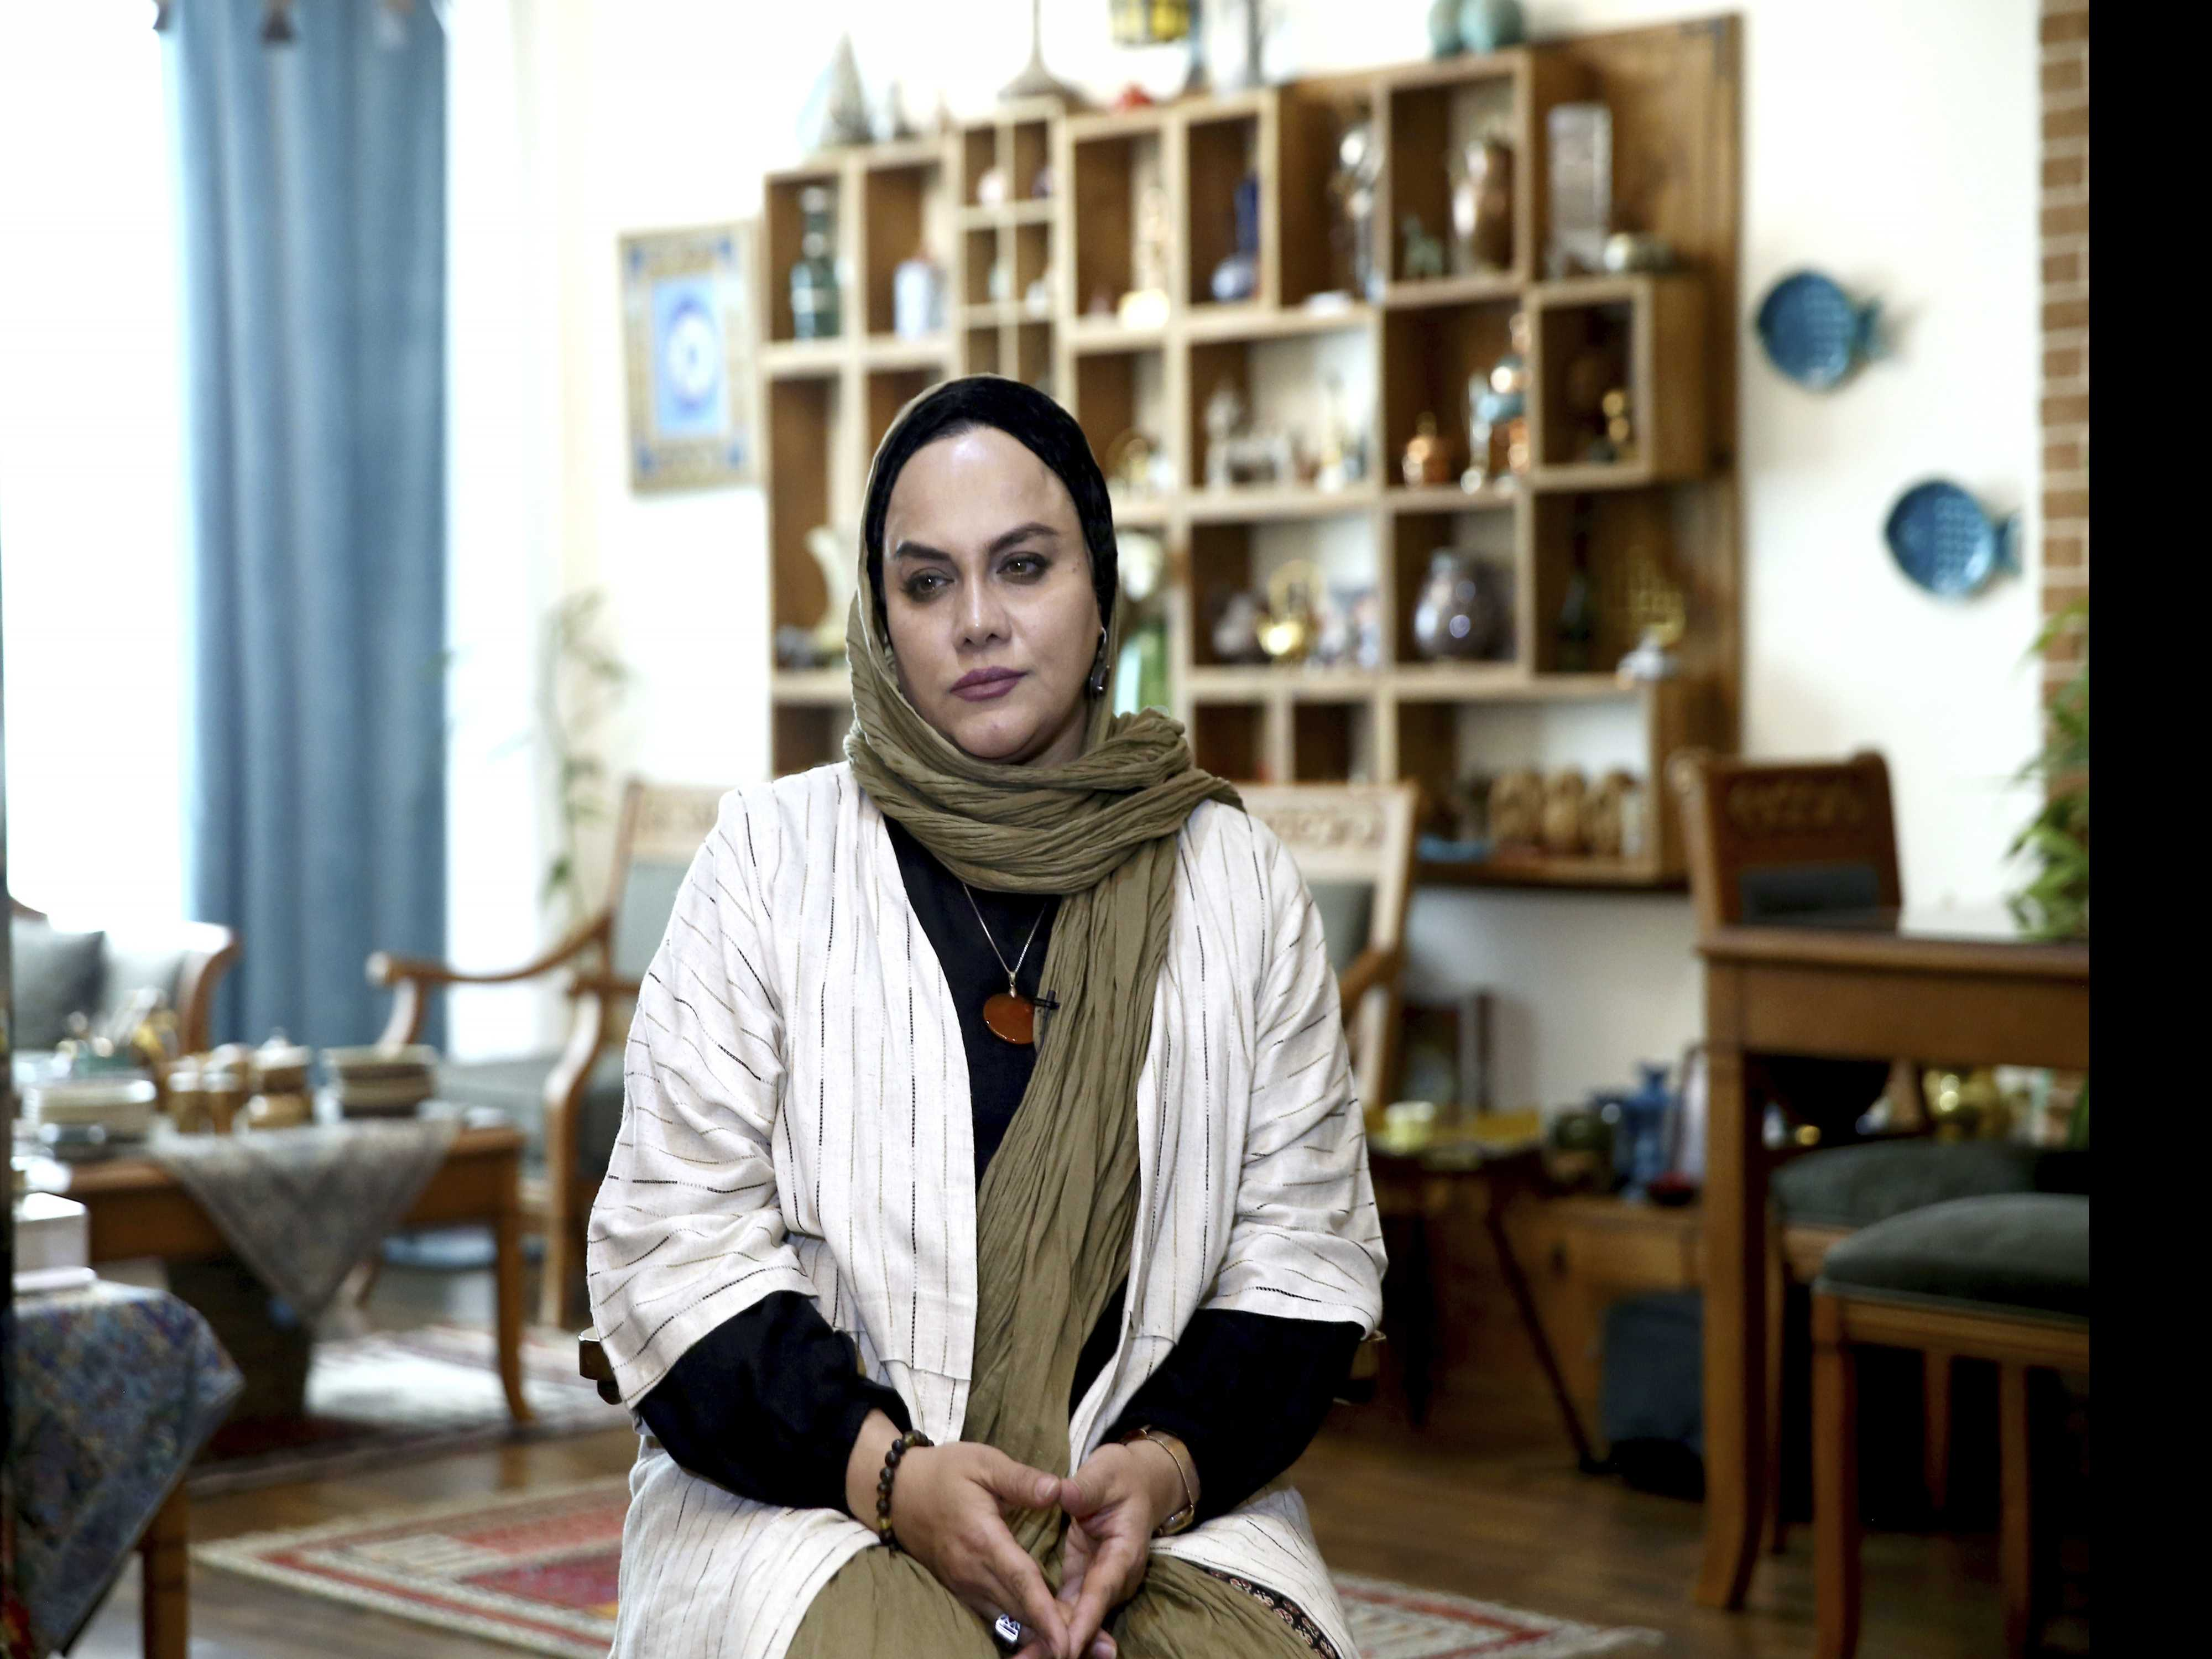 Iran's First Oscar Submission Directed by Woman Causes Stir